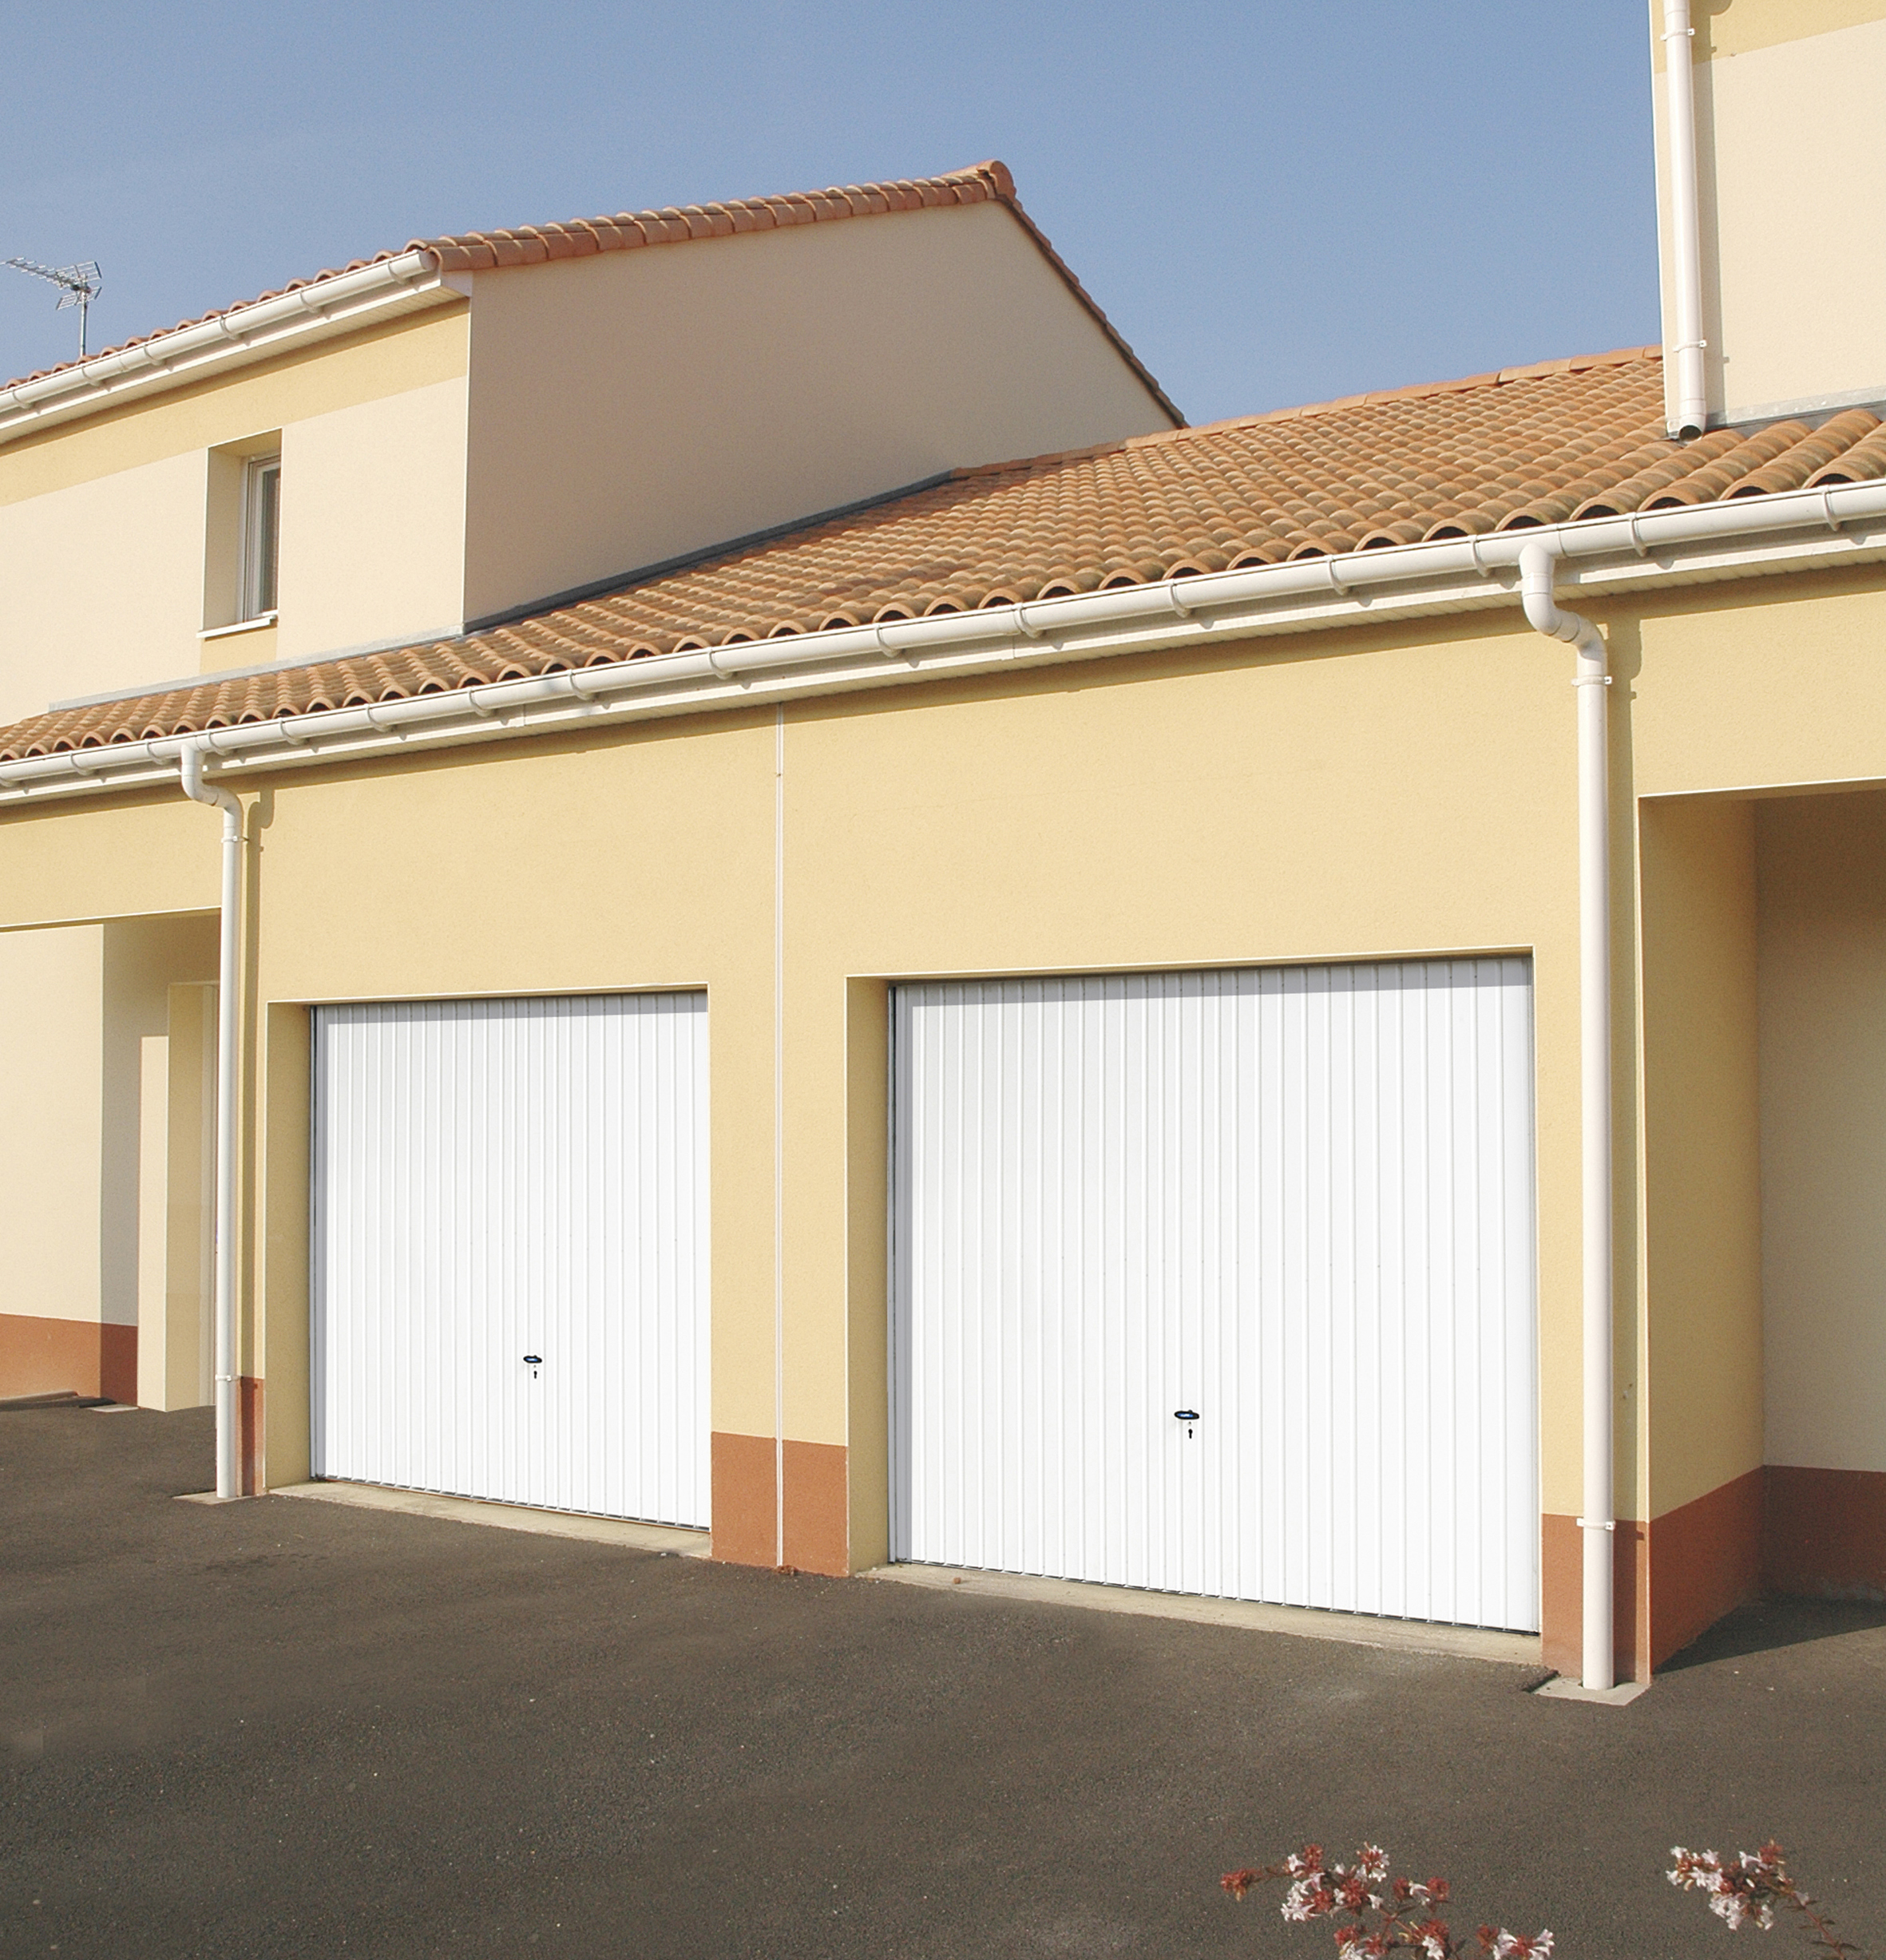 Baies fermetures grenoble fen tres volets baies for Porte de garage basculante en aluminium